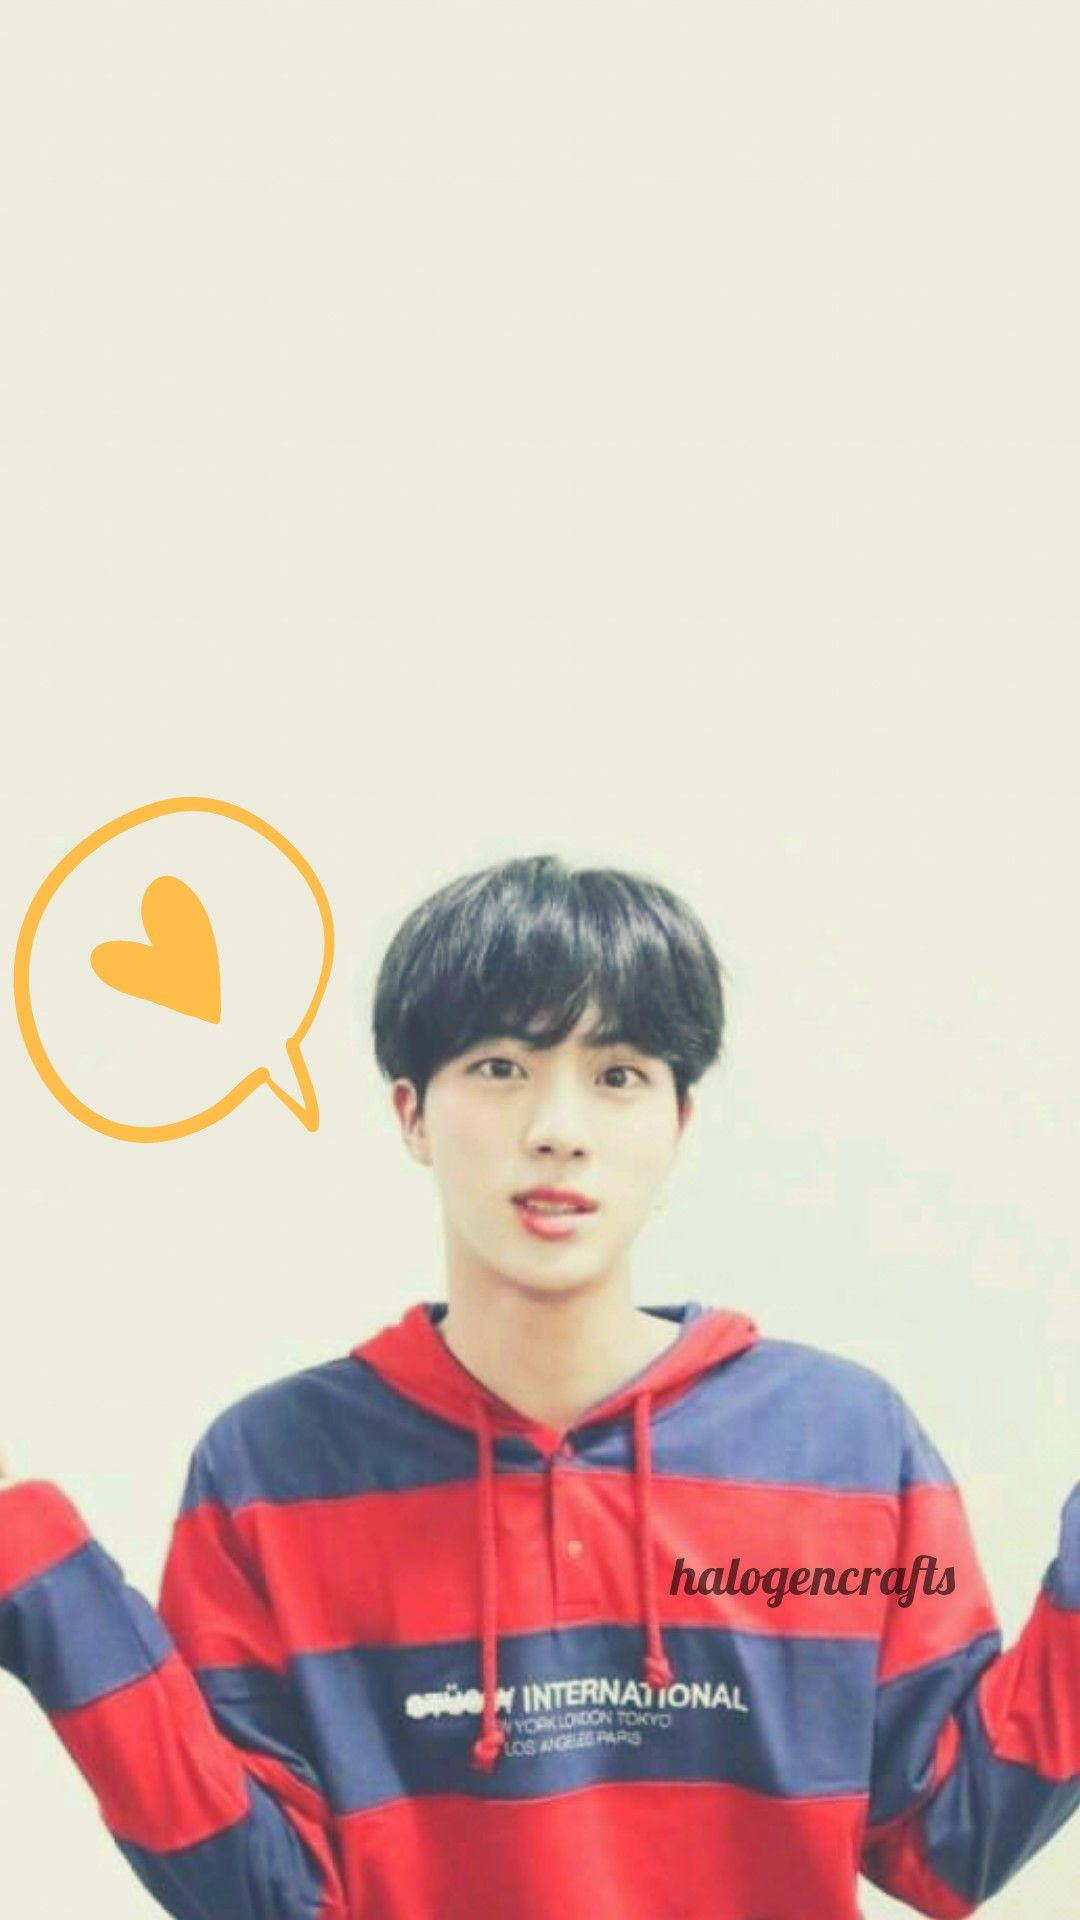 Bts Jin Wallpaper Halogencrafts Bts Jin Wallpaper Lockscreen Created By Halogencrafts Don T Edit Bts Jin Bts Wallpaper Lockscreen